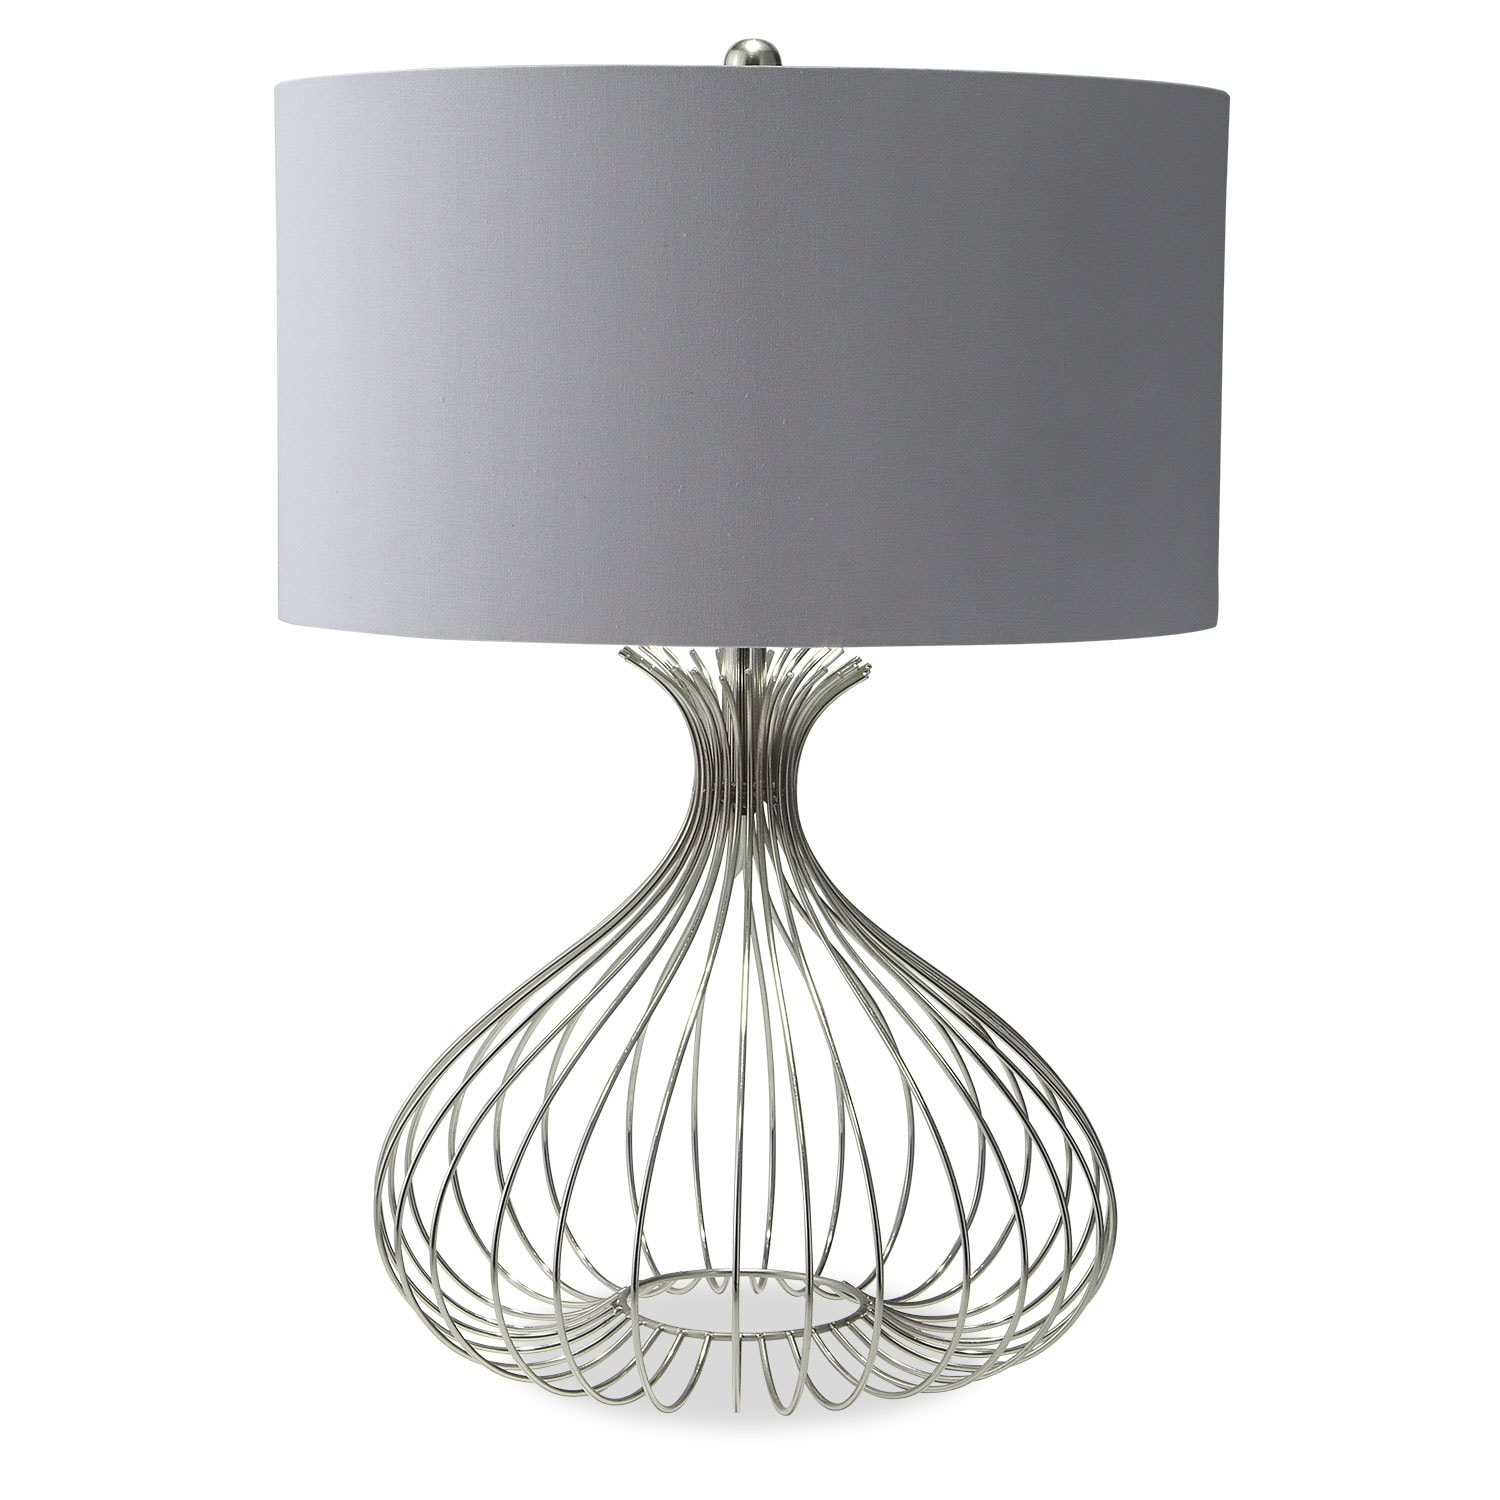 Nickel wire table lamp value city furniture and mattresses home accessories nickel wire table lamp greentooth Gallery